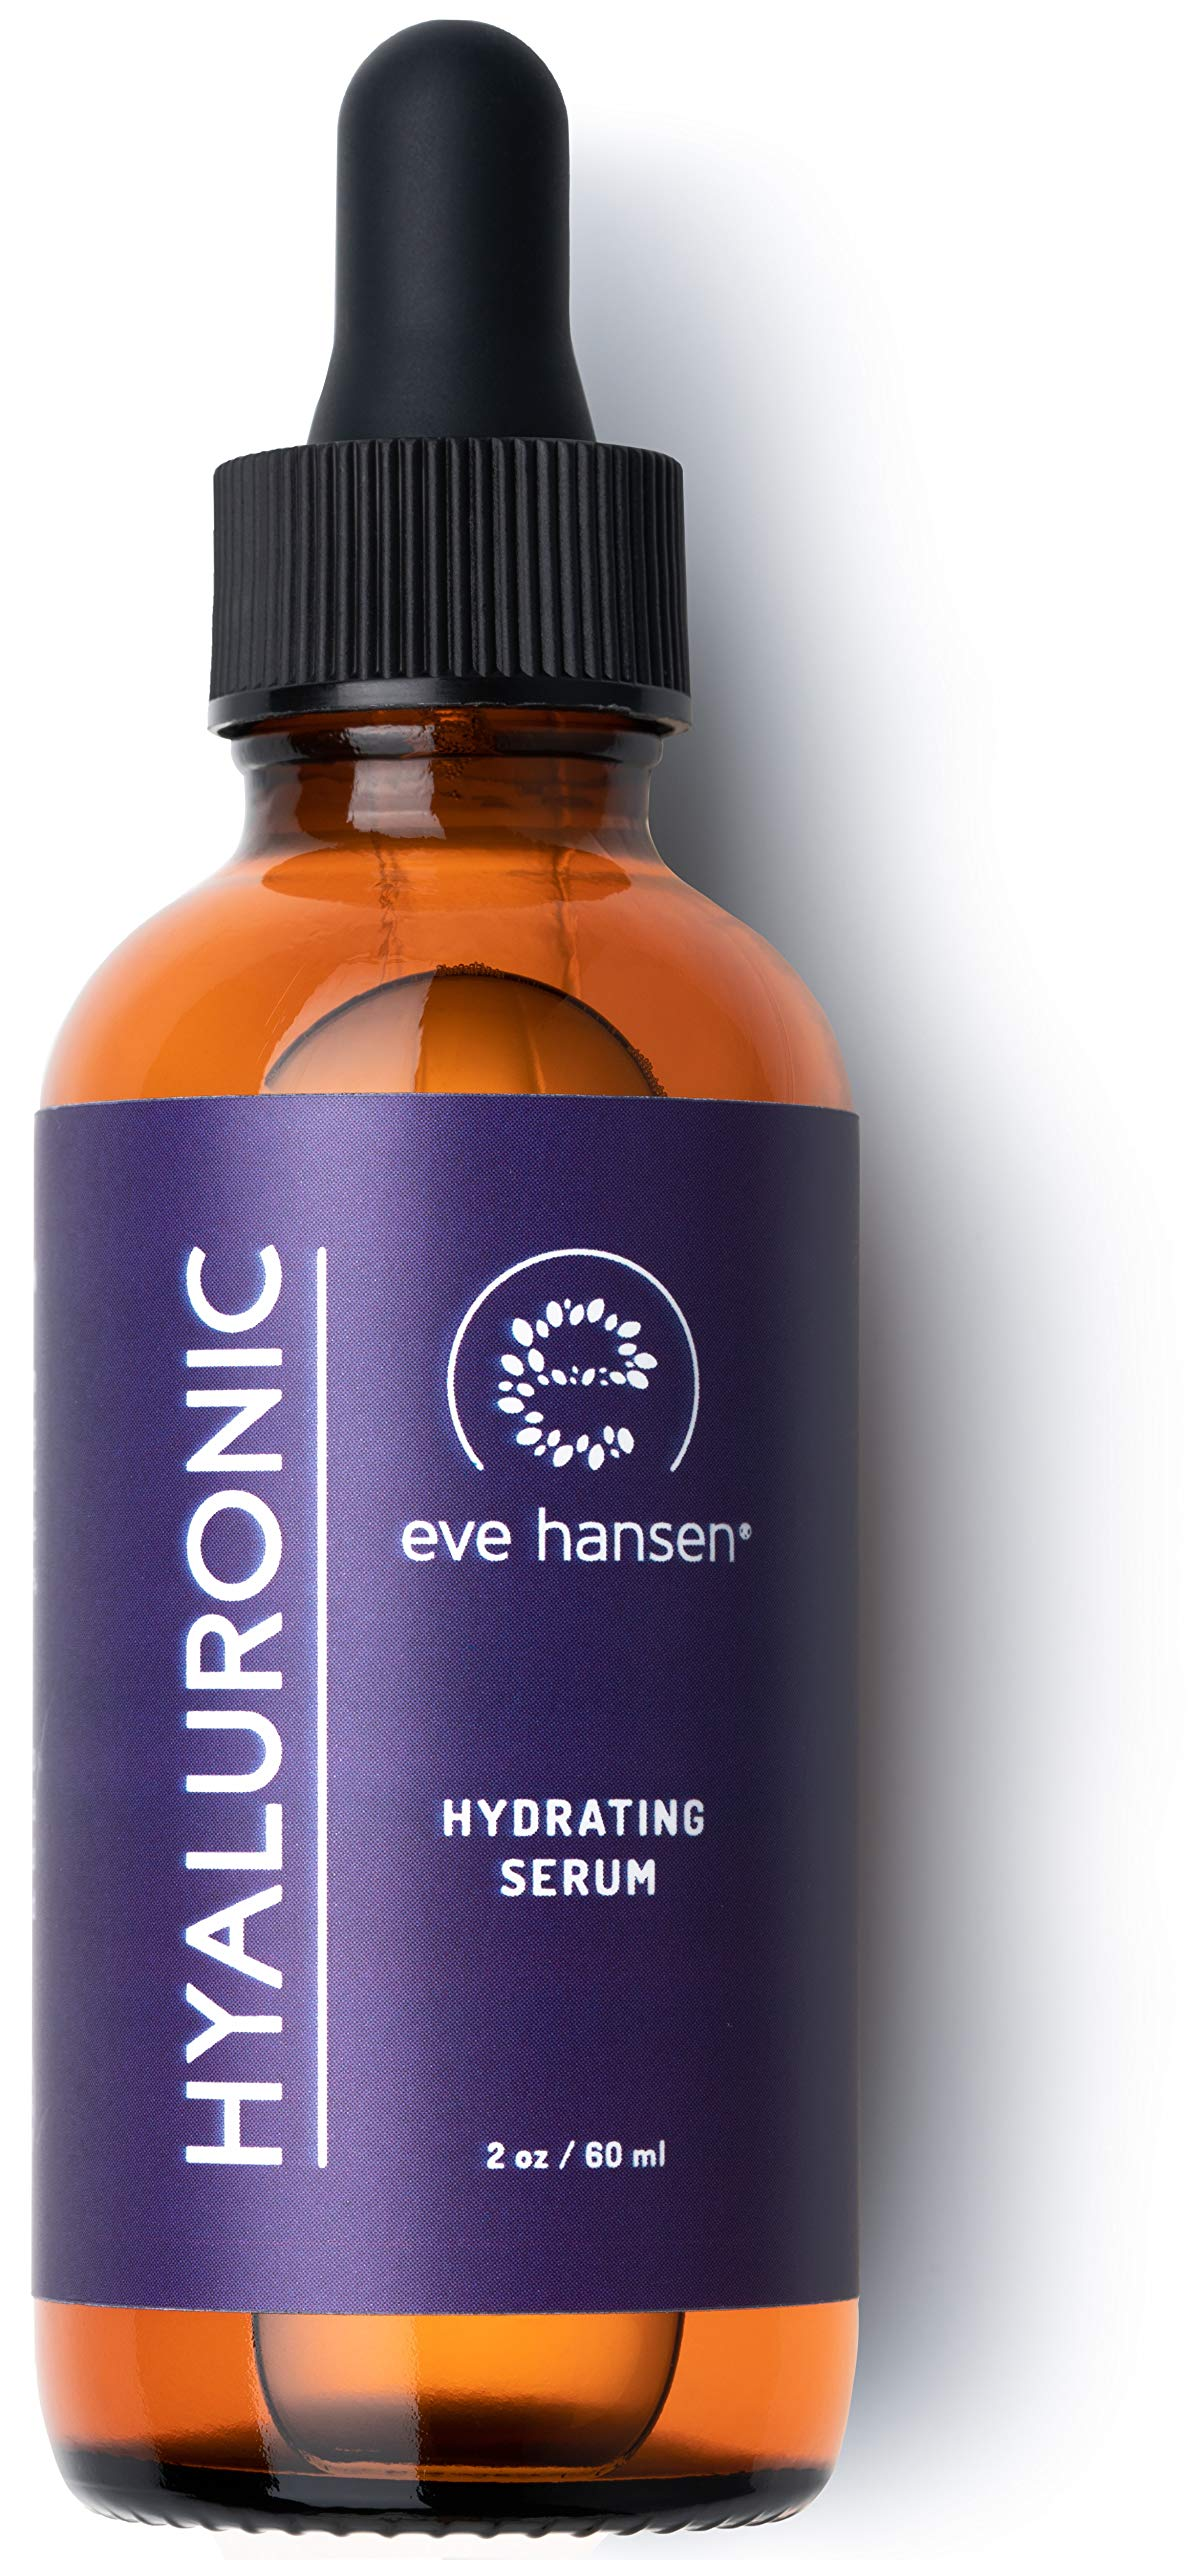 Eve Hansen Hyaluronic Acid Serum (2 oz) | Ultimate Hydrating Serum, Face Moisturizer, Wrinkle Filler and Natural Plumper | The Natural, Cruelty Free, Vegan Anti Aging Serum by Eve Hansen